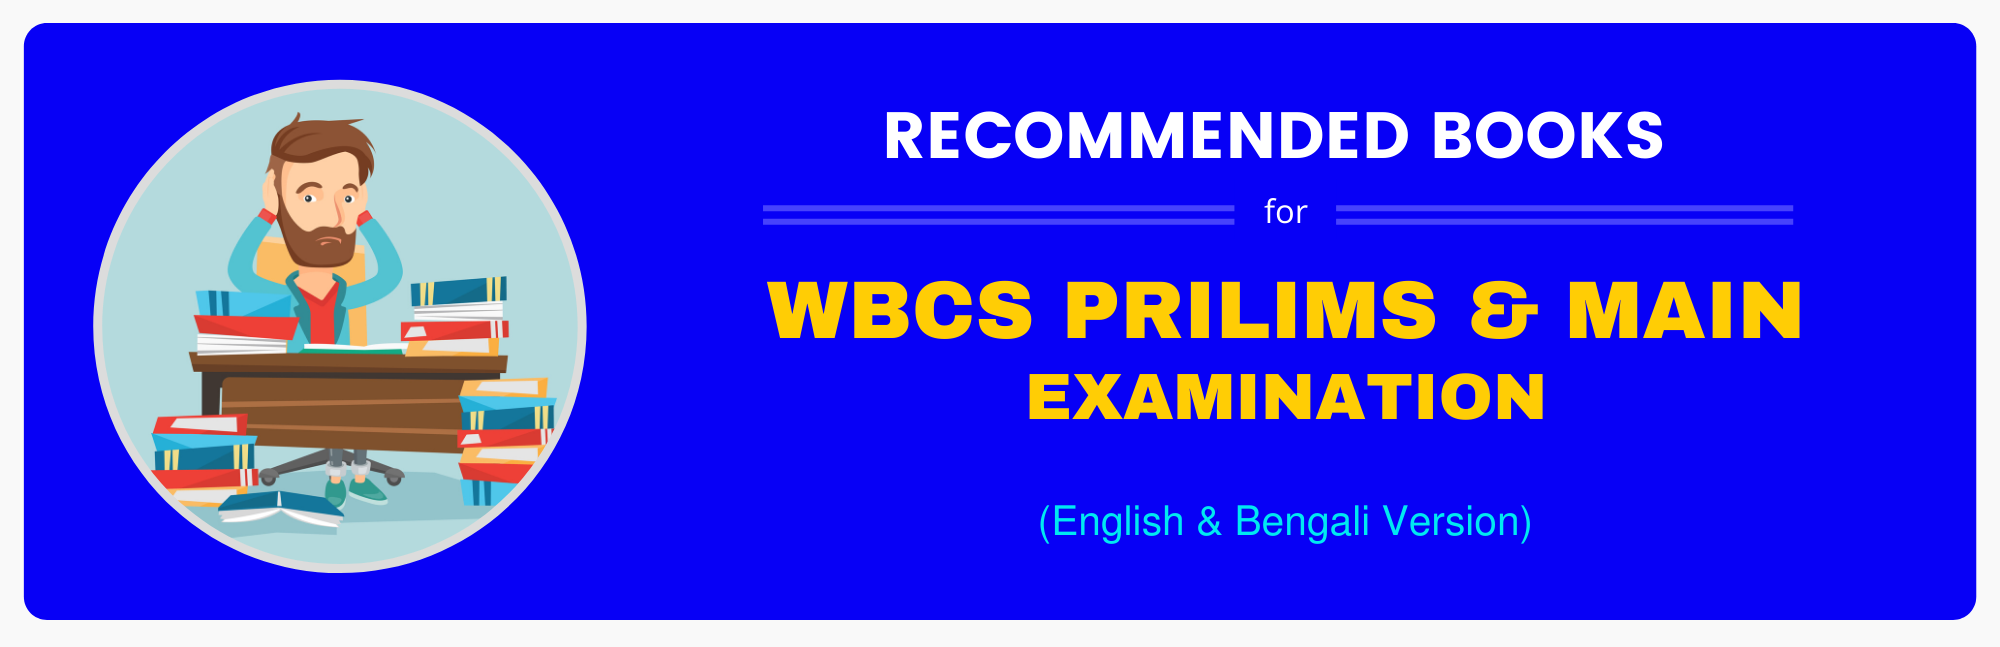 English and Bengali version recommended Books for WBCS Prelims & Main exams